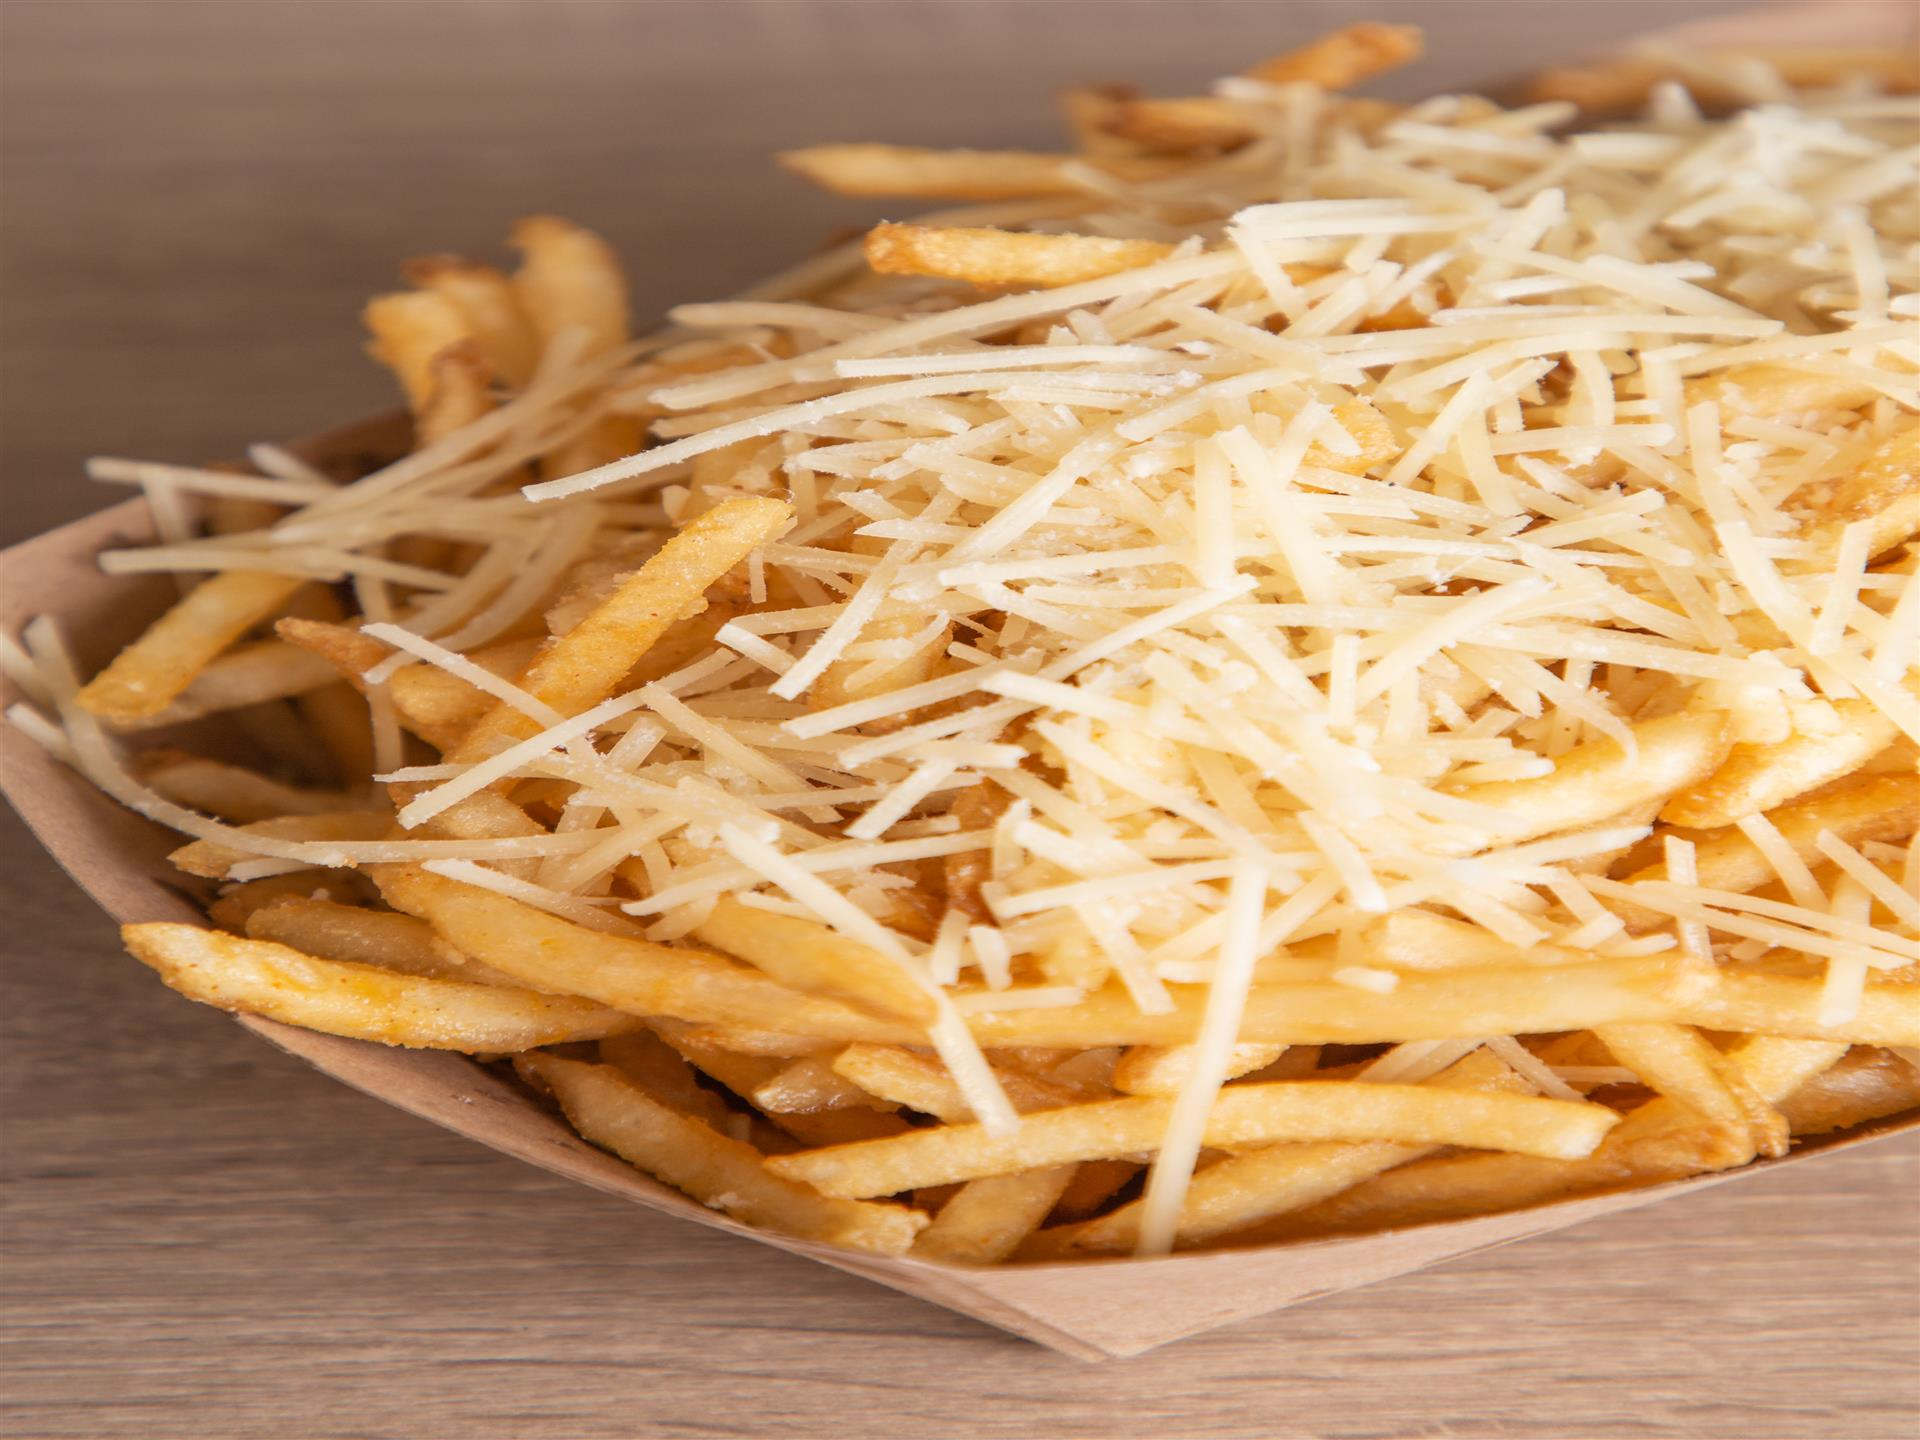 fries with shredded cheese on top